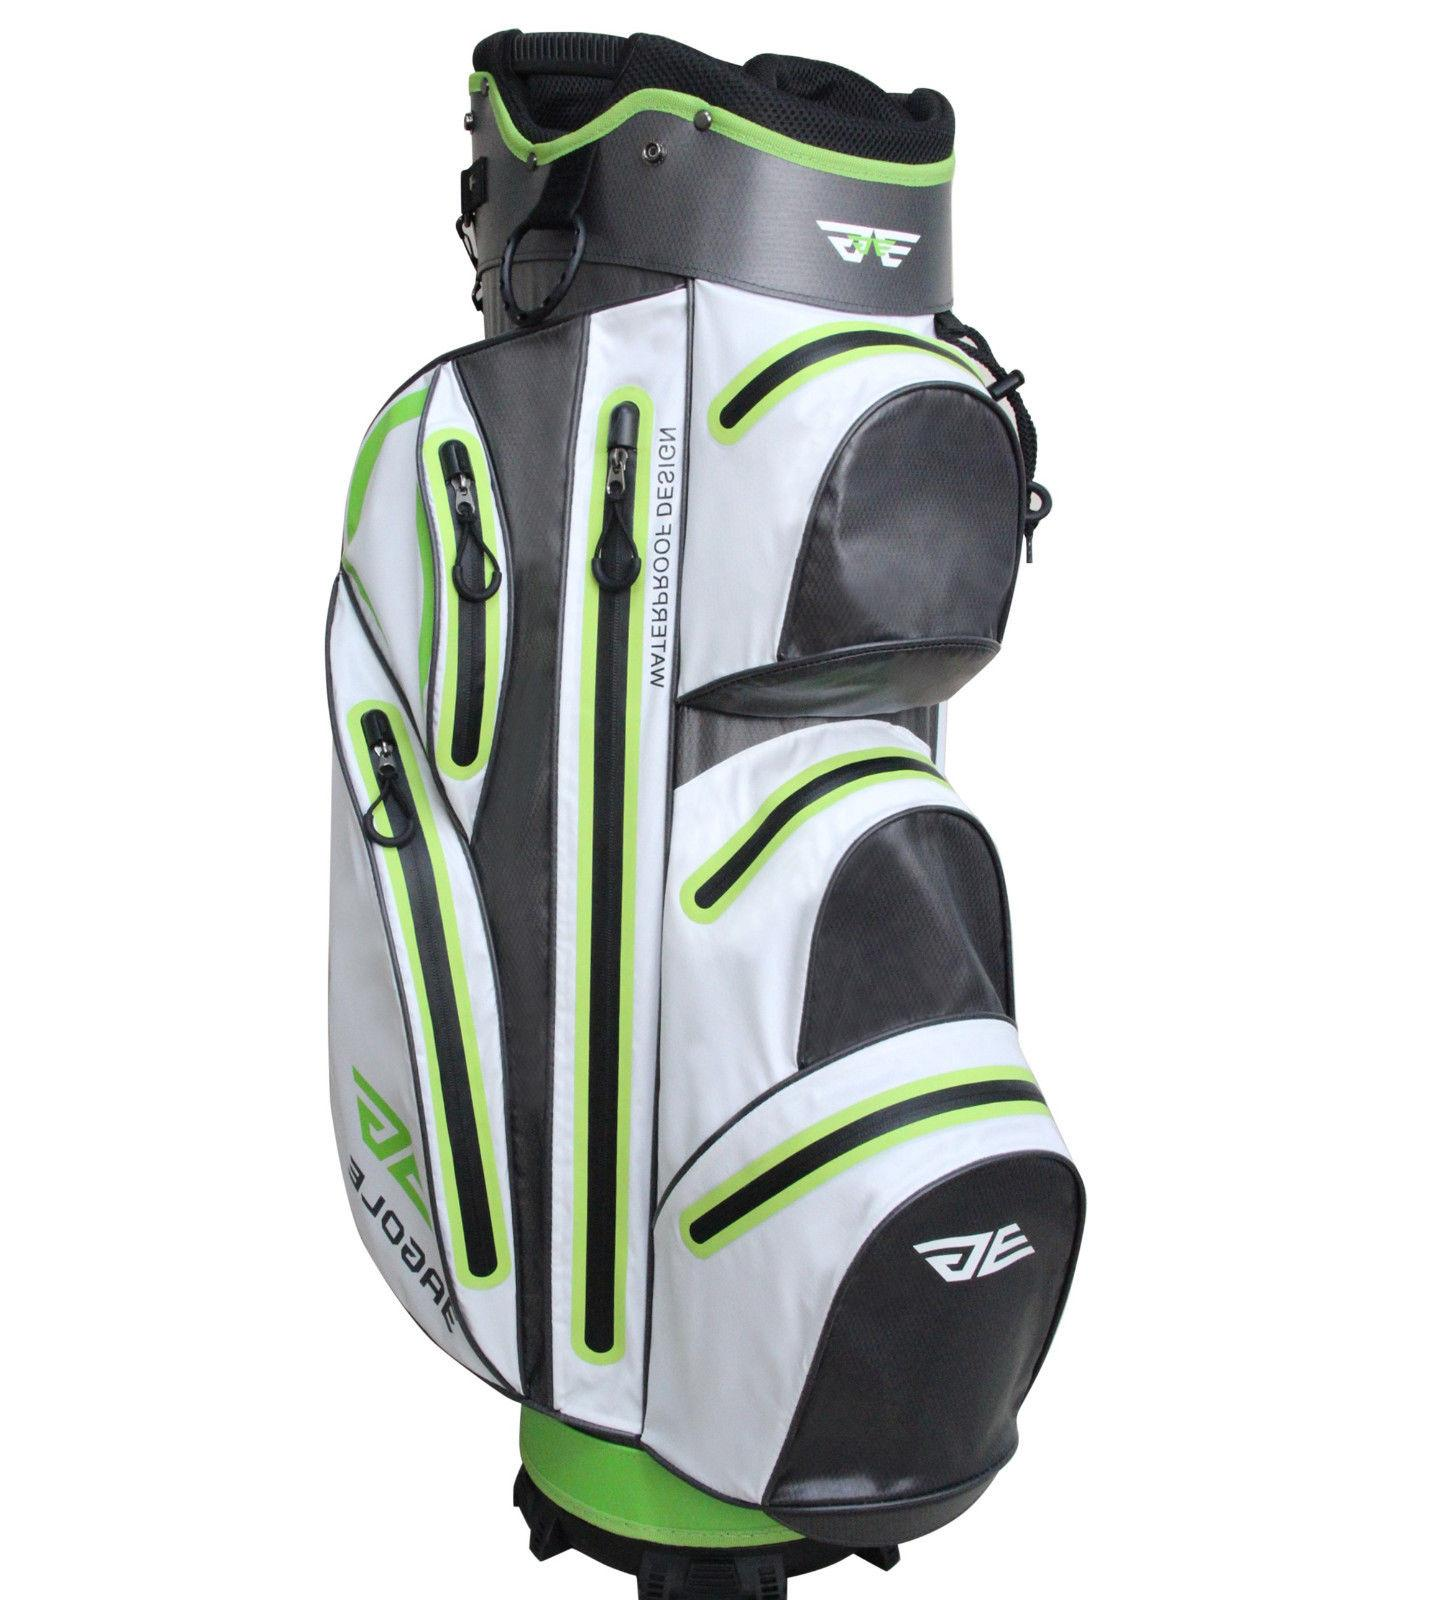 Eagole 5 Lbs, Pockets LENGTH Golf CART